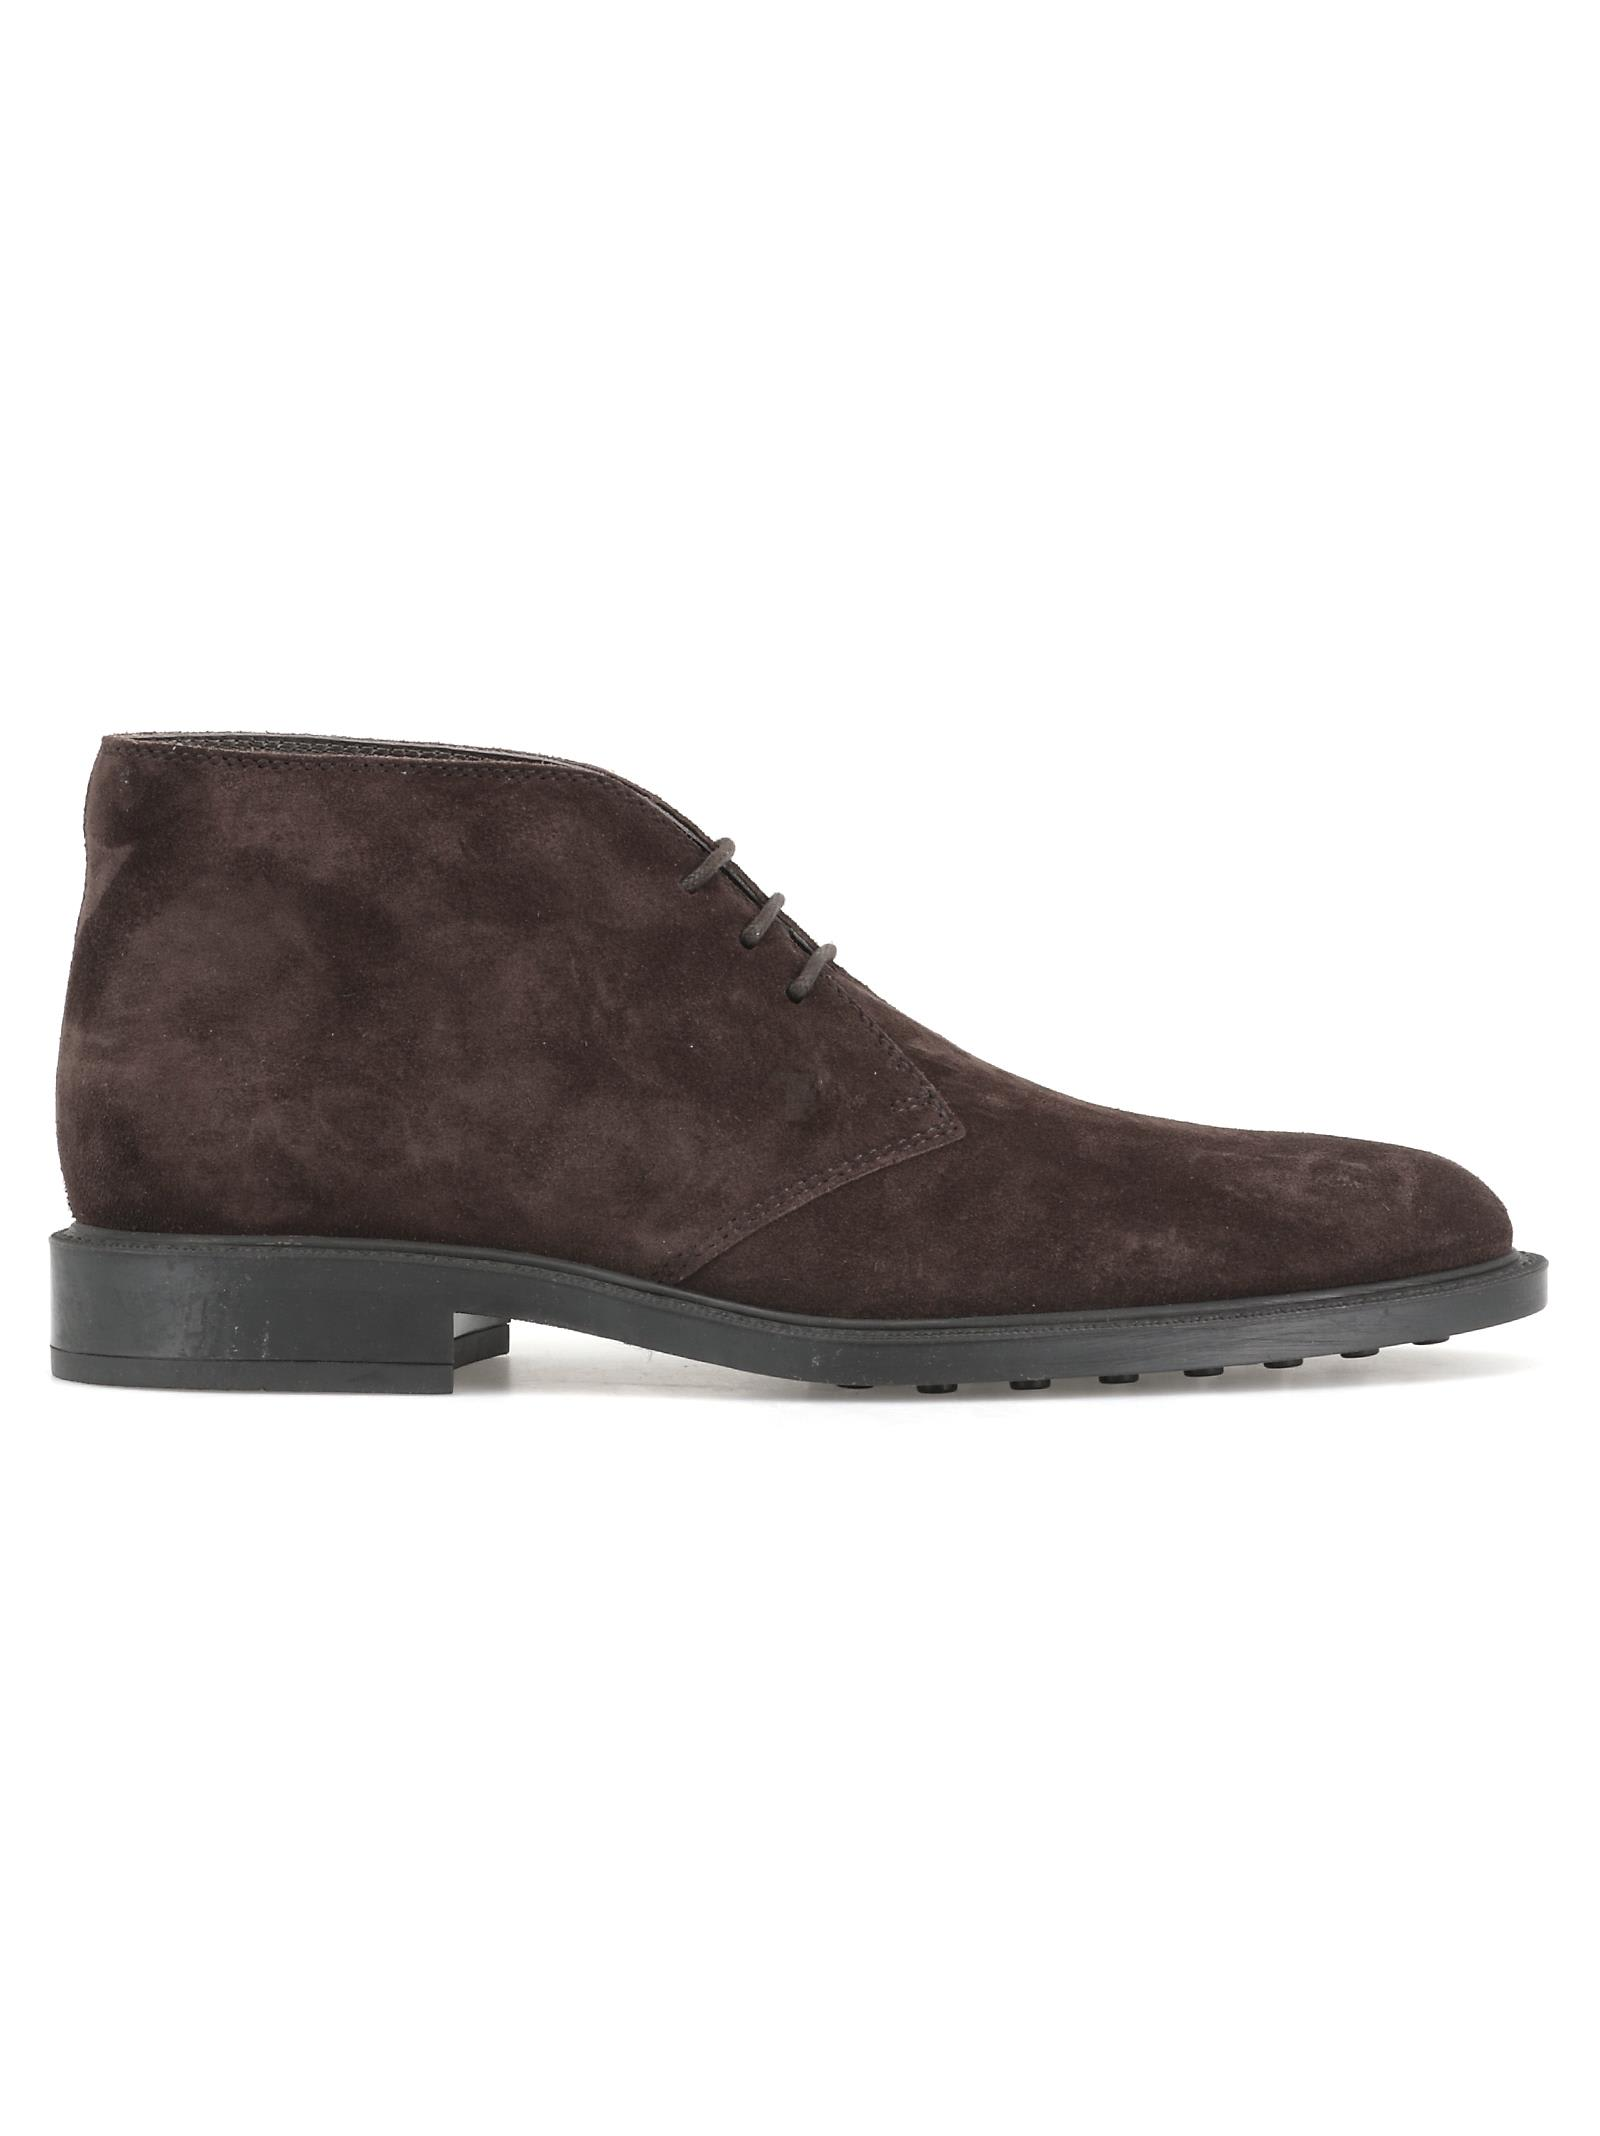 Tods Leather Desert Boot